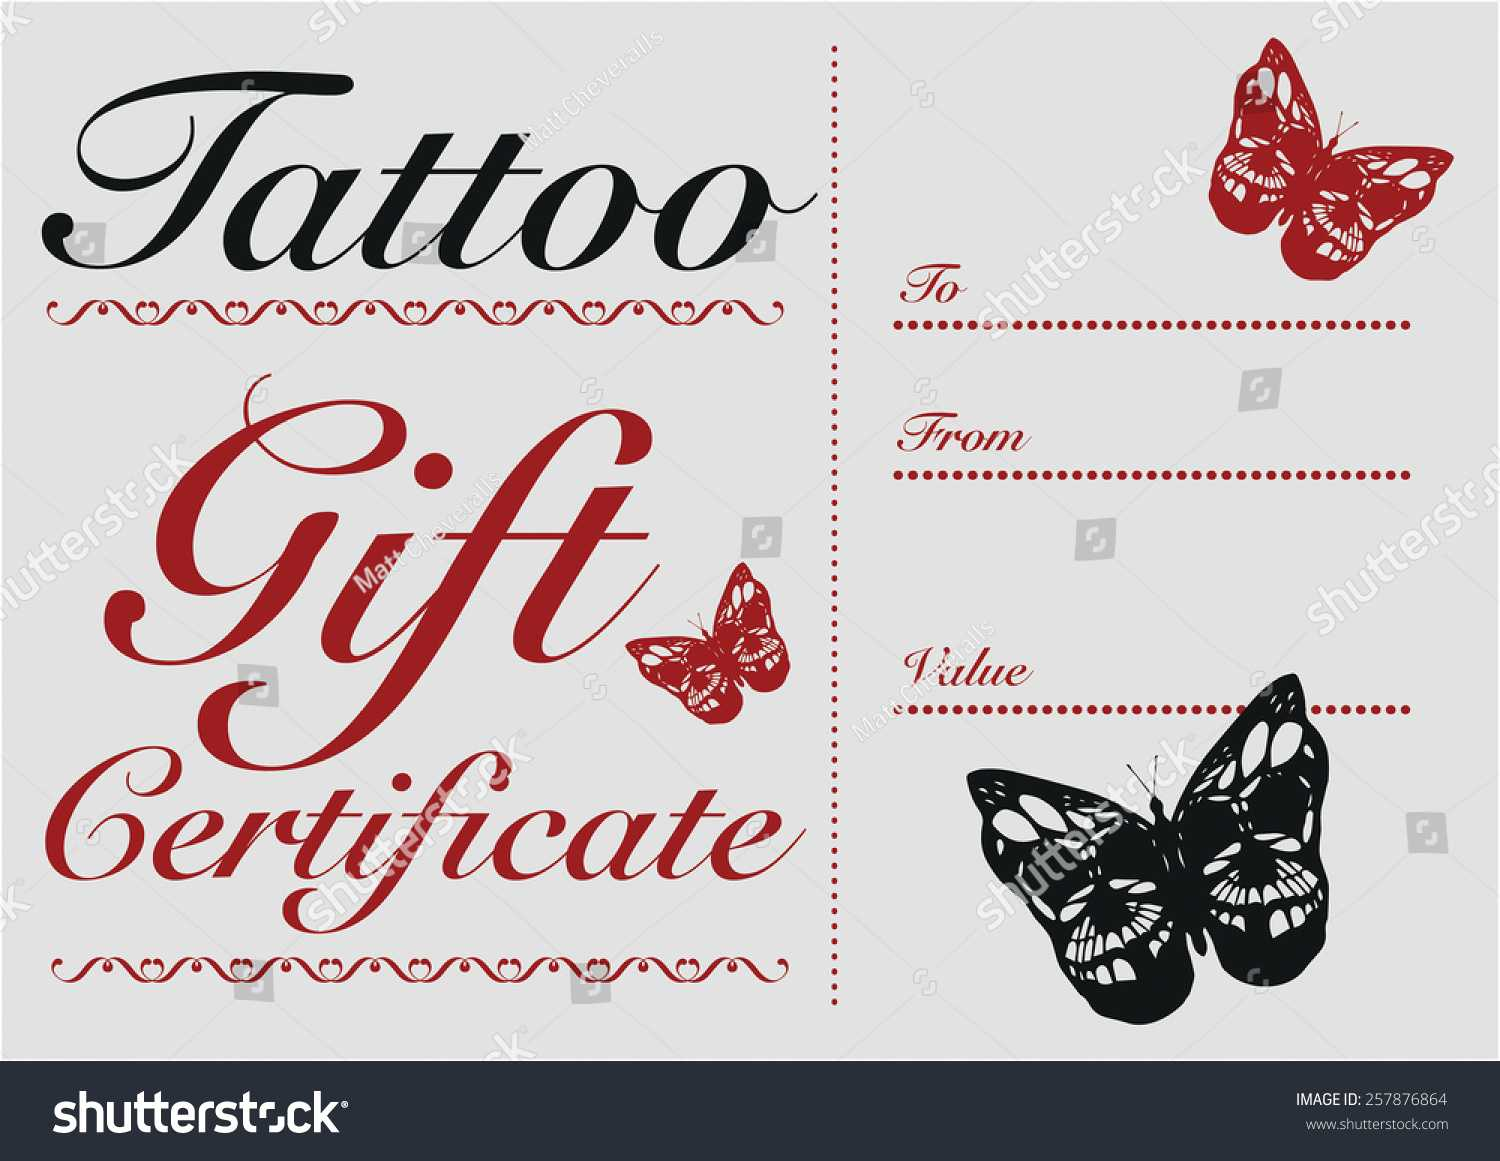 Стоковая Векторная Графика «Butterfly Skull Tattoo Gift Card With Regard To Tattoo Gift Certificate Template